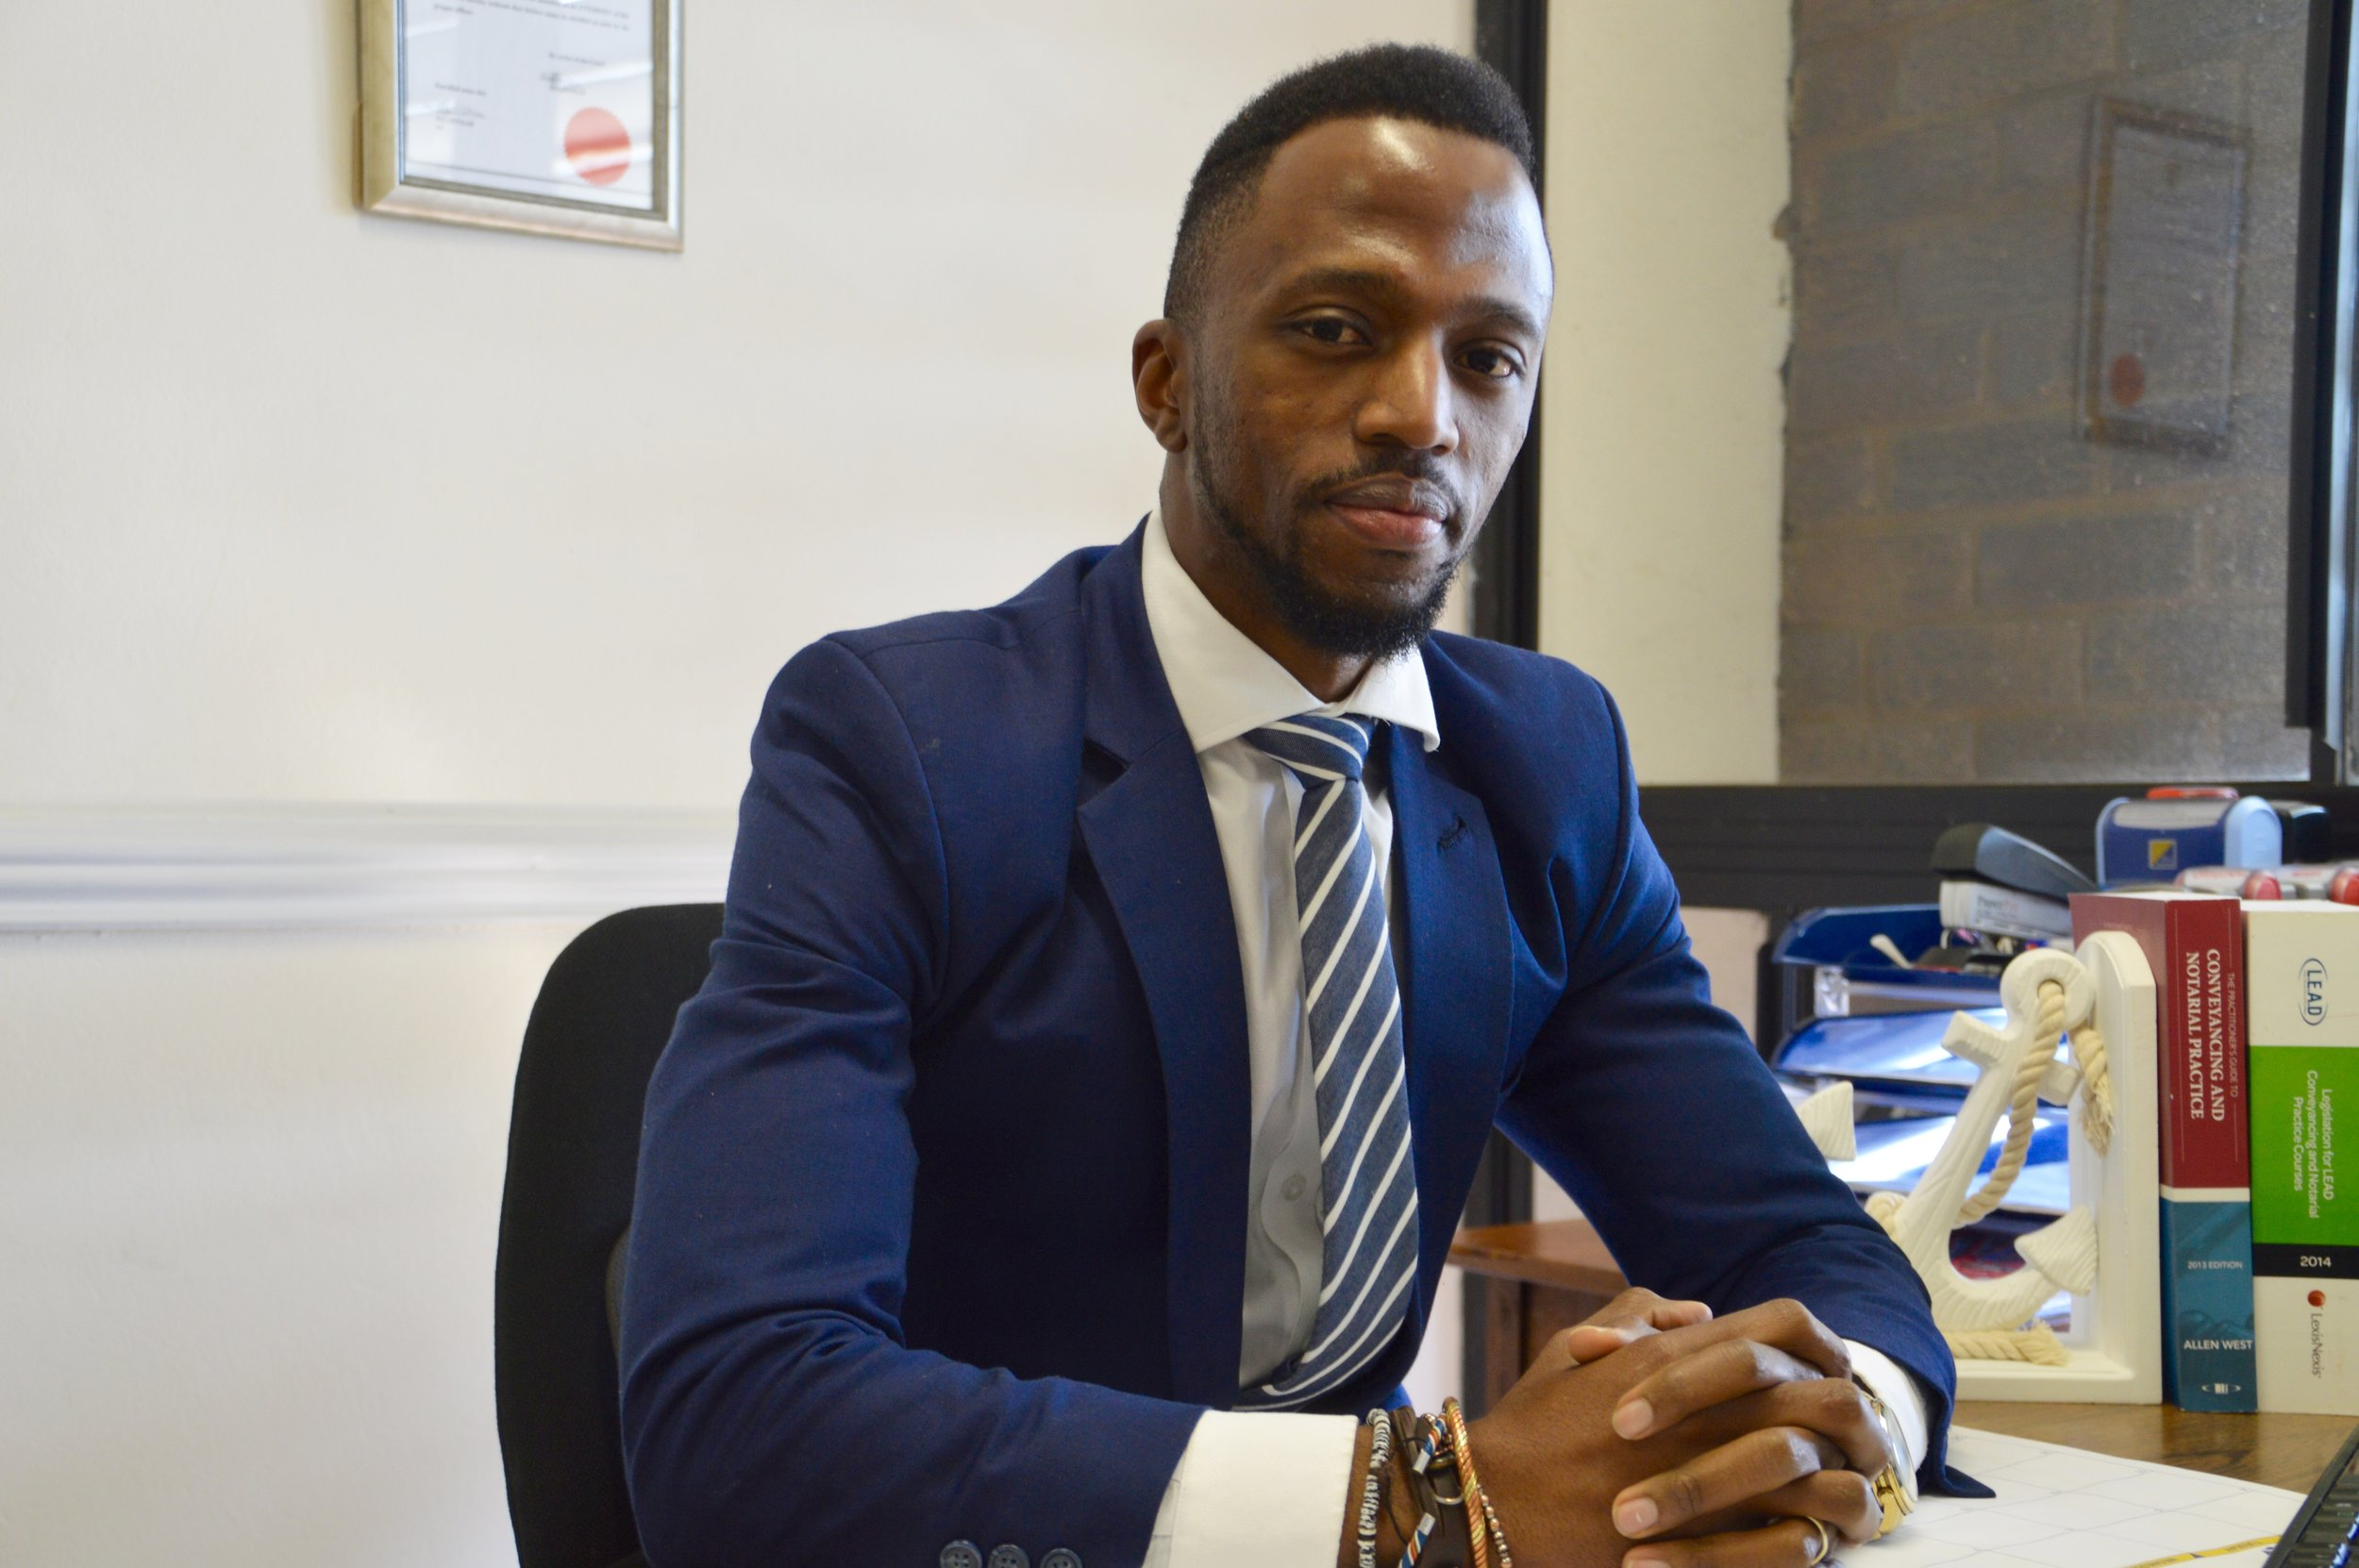 Jehoshaphat Njau (Legal Advisor)   Jo' as he is fondly called by many, is a South African Attorney, a human rights activist and a multi-disciplinary entrepreneur. He has expertise in Corporate and Securities Law, a field from which he holds an LLM, obtained from the University of Pretoria.